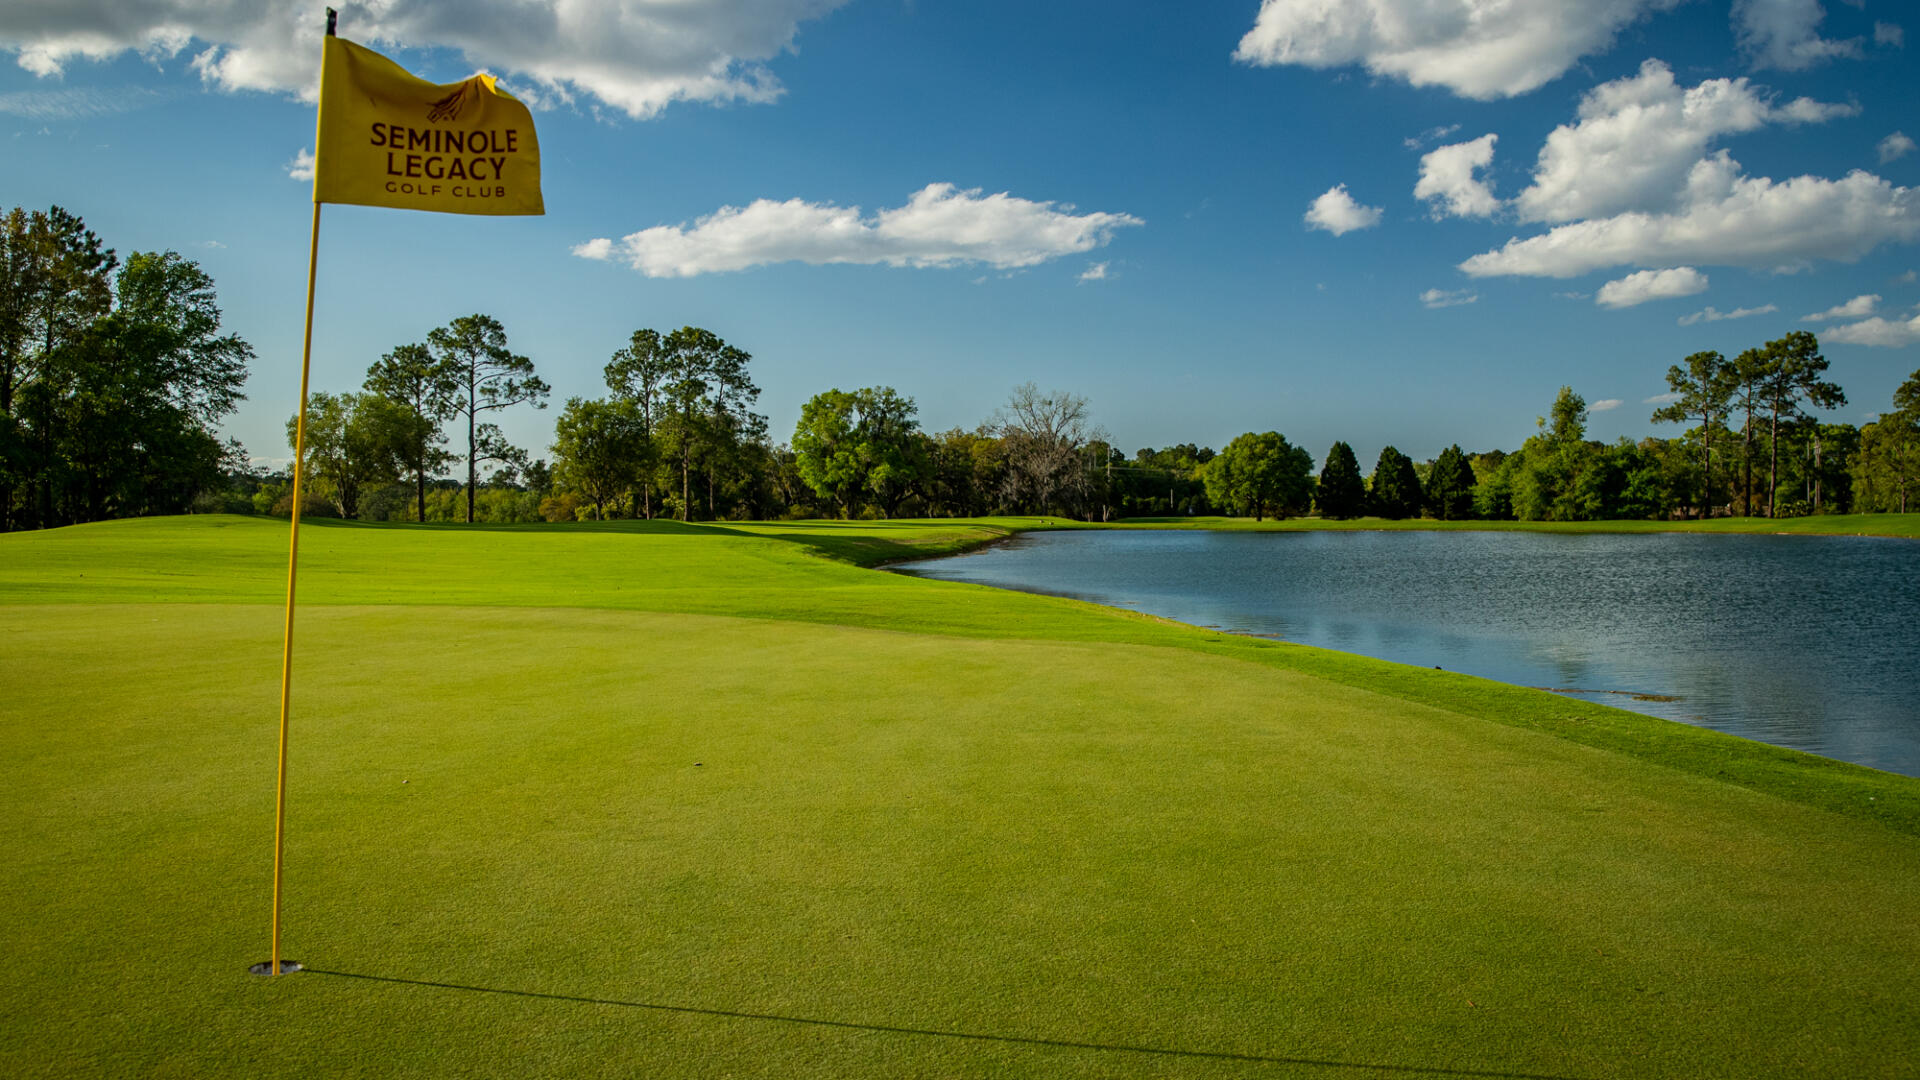 NCAA Golf Regional: What You Need To Know